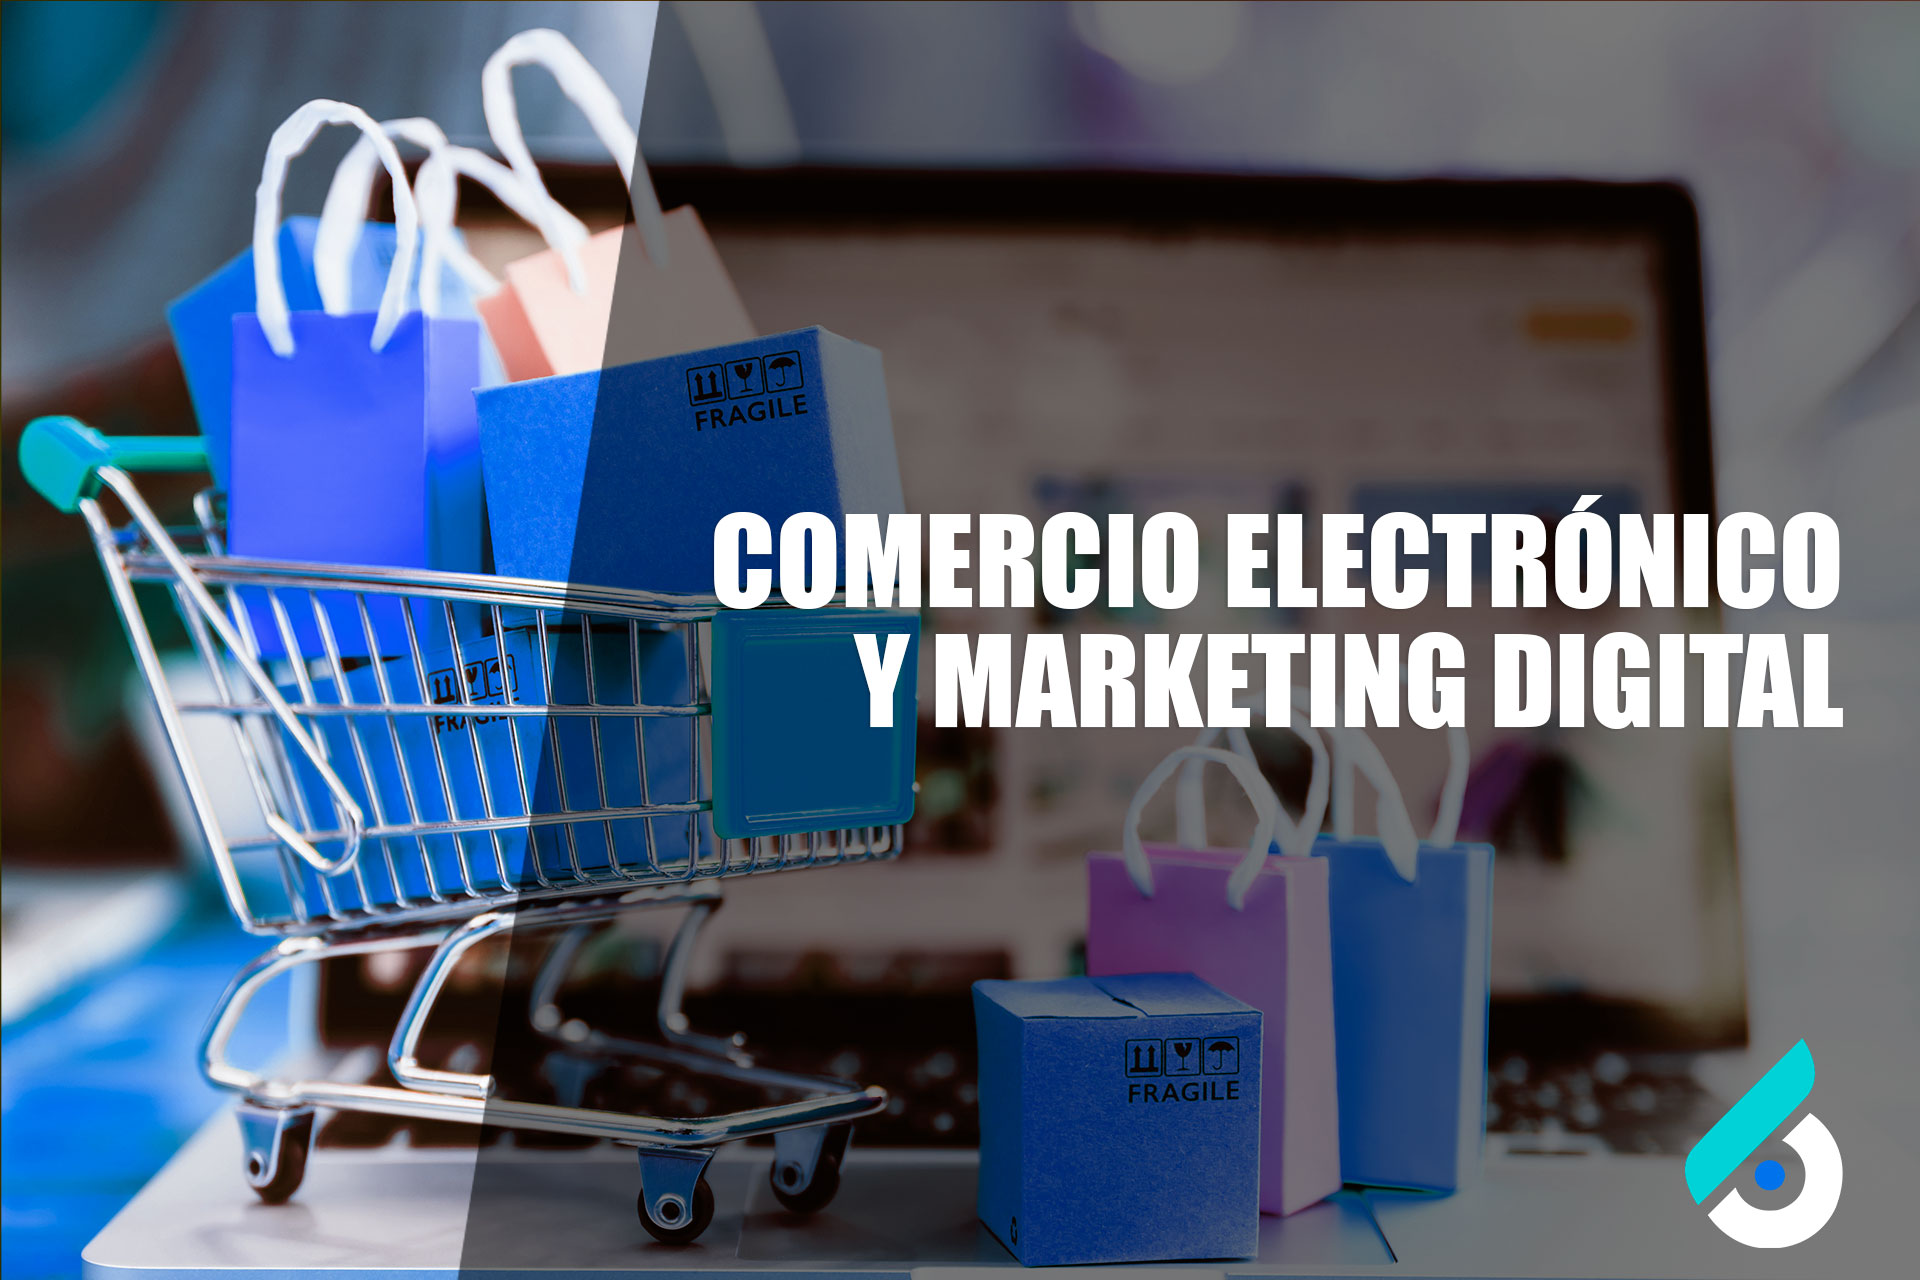 DMIPE-20-01-13-0461-2 | Comercio Electrónico y Marketing Digital